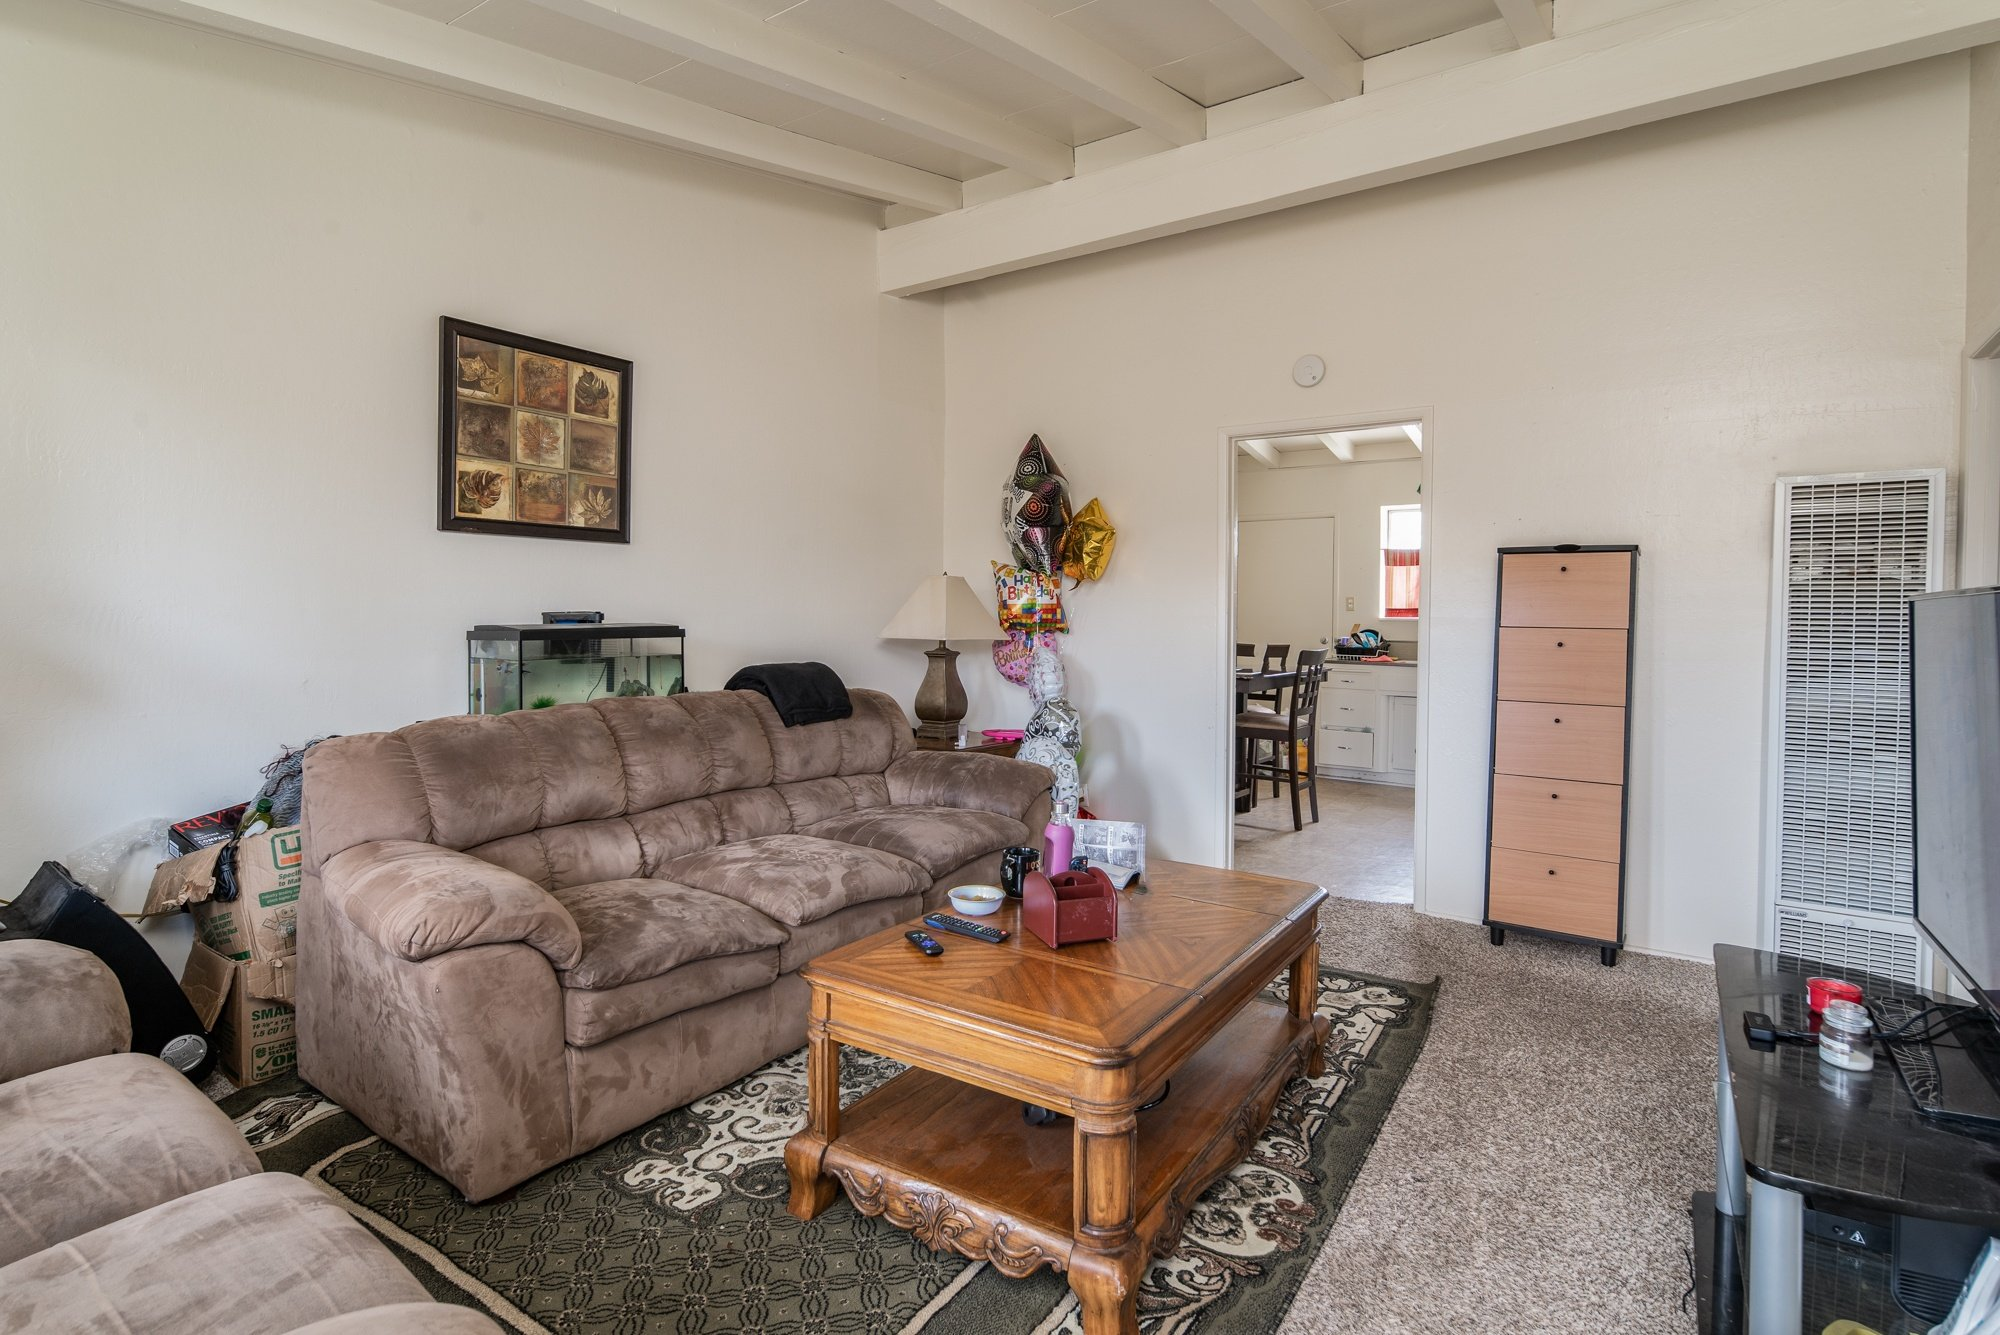 Palmdale, CA best real estate agent 557 - 559 West Avenue H 8, Lancaster, CA 93534 (living room)